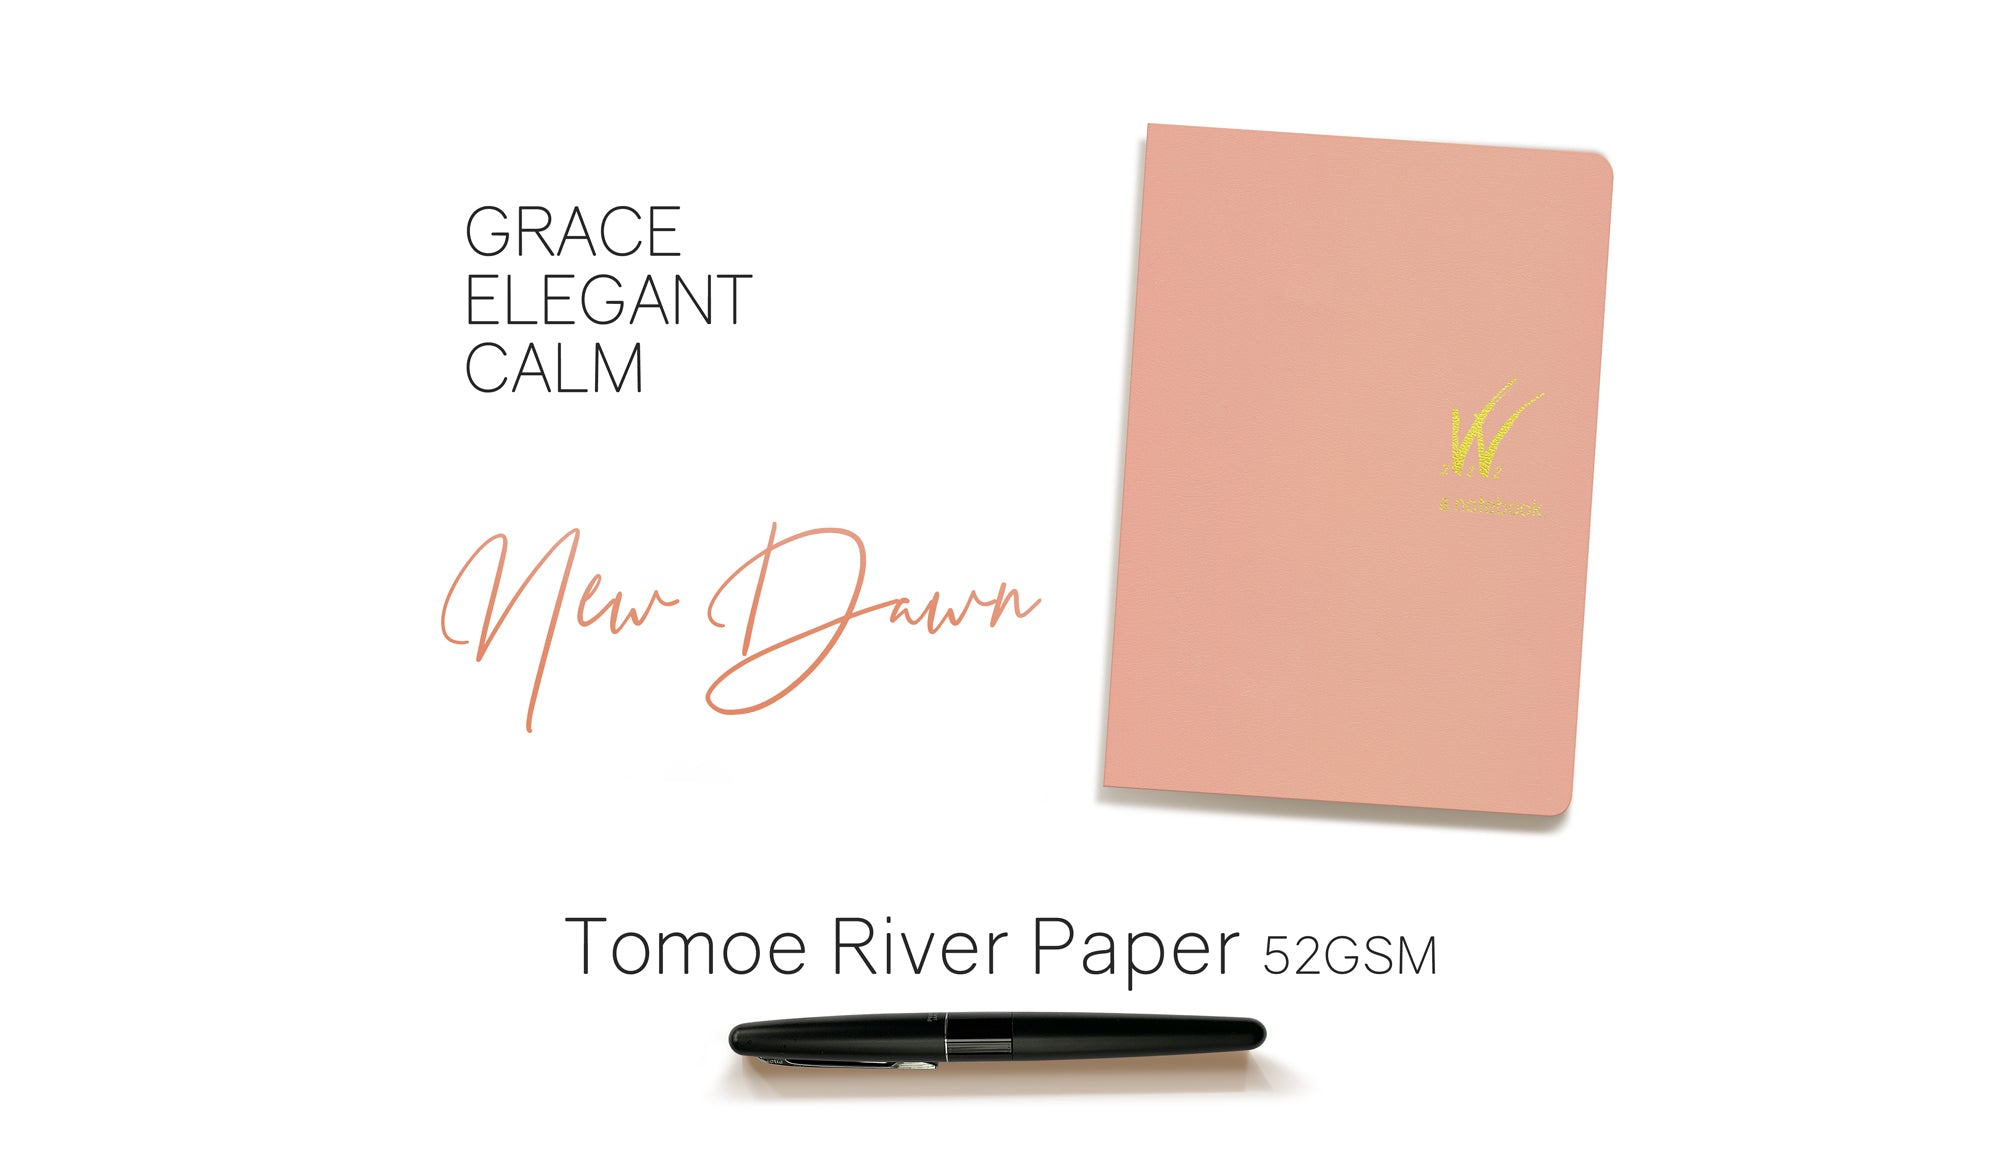 B6 52gsm Tomoe River Paper Notebook with peach cover by Wonderland 222.  368 pages of smooth, ultra lightweight fountain pen friendly Tomoe River Paper.